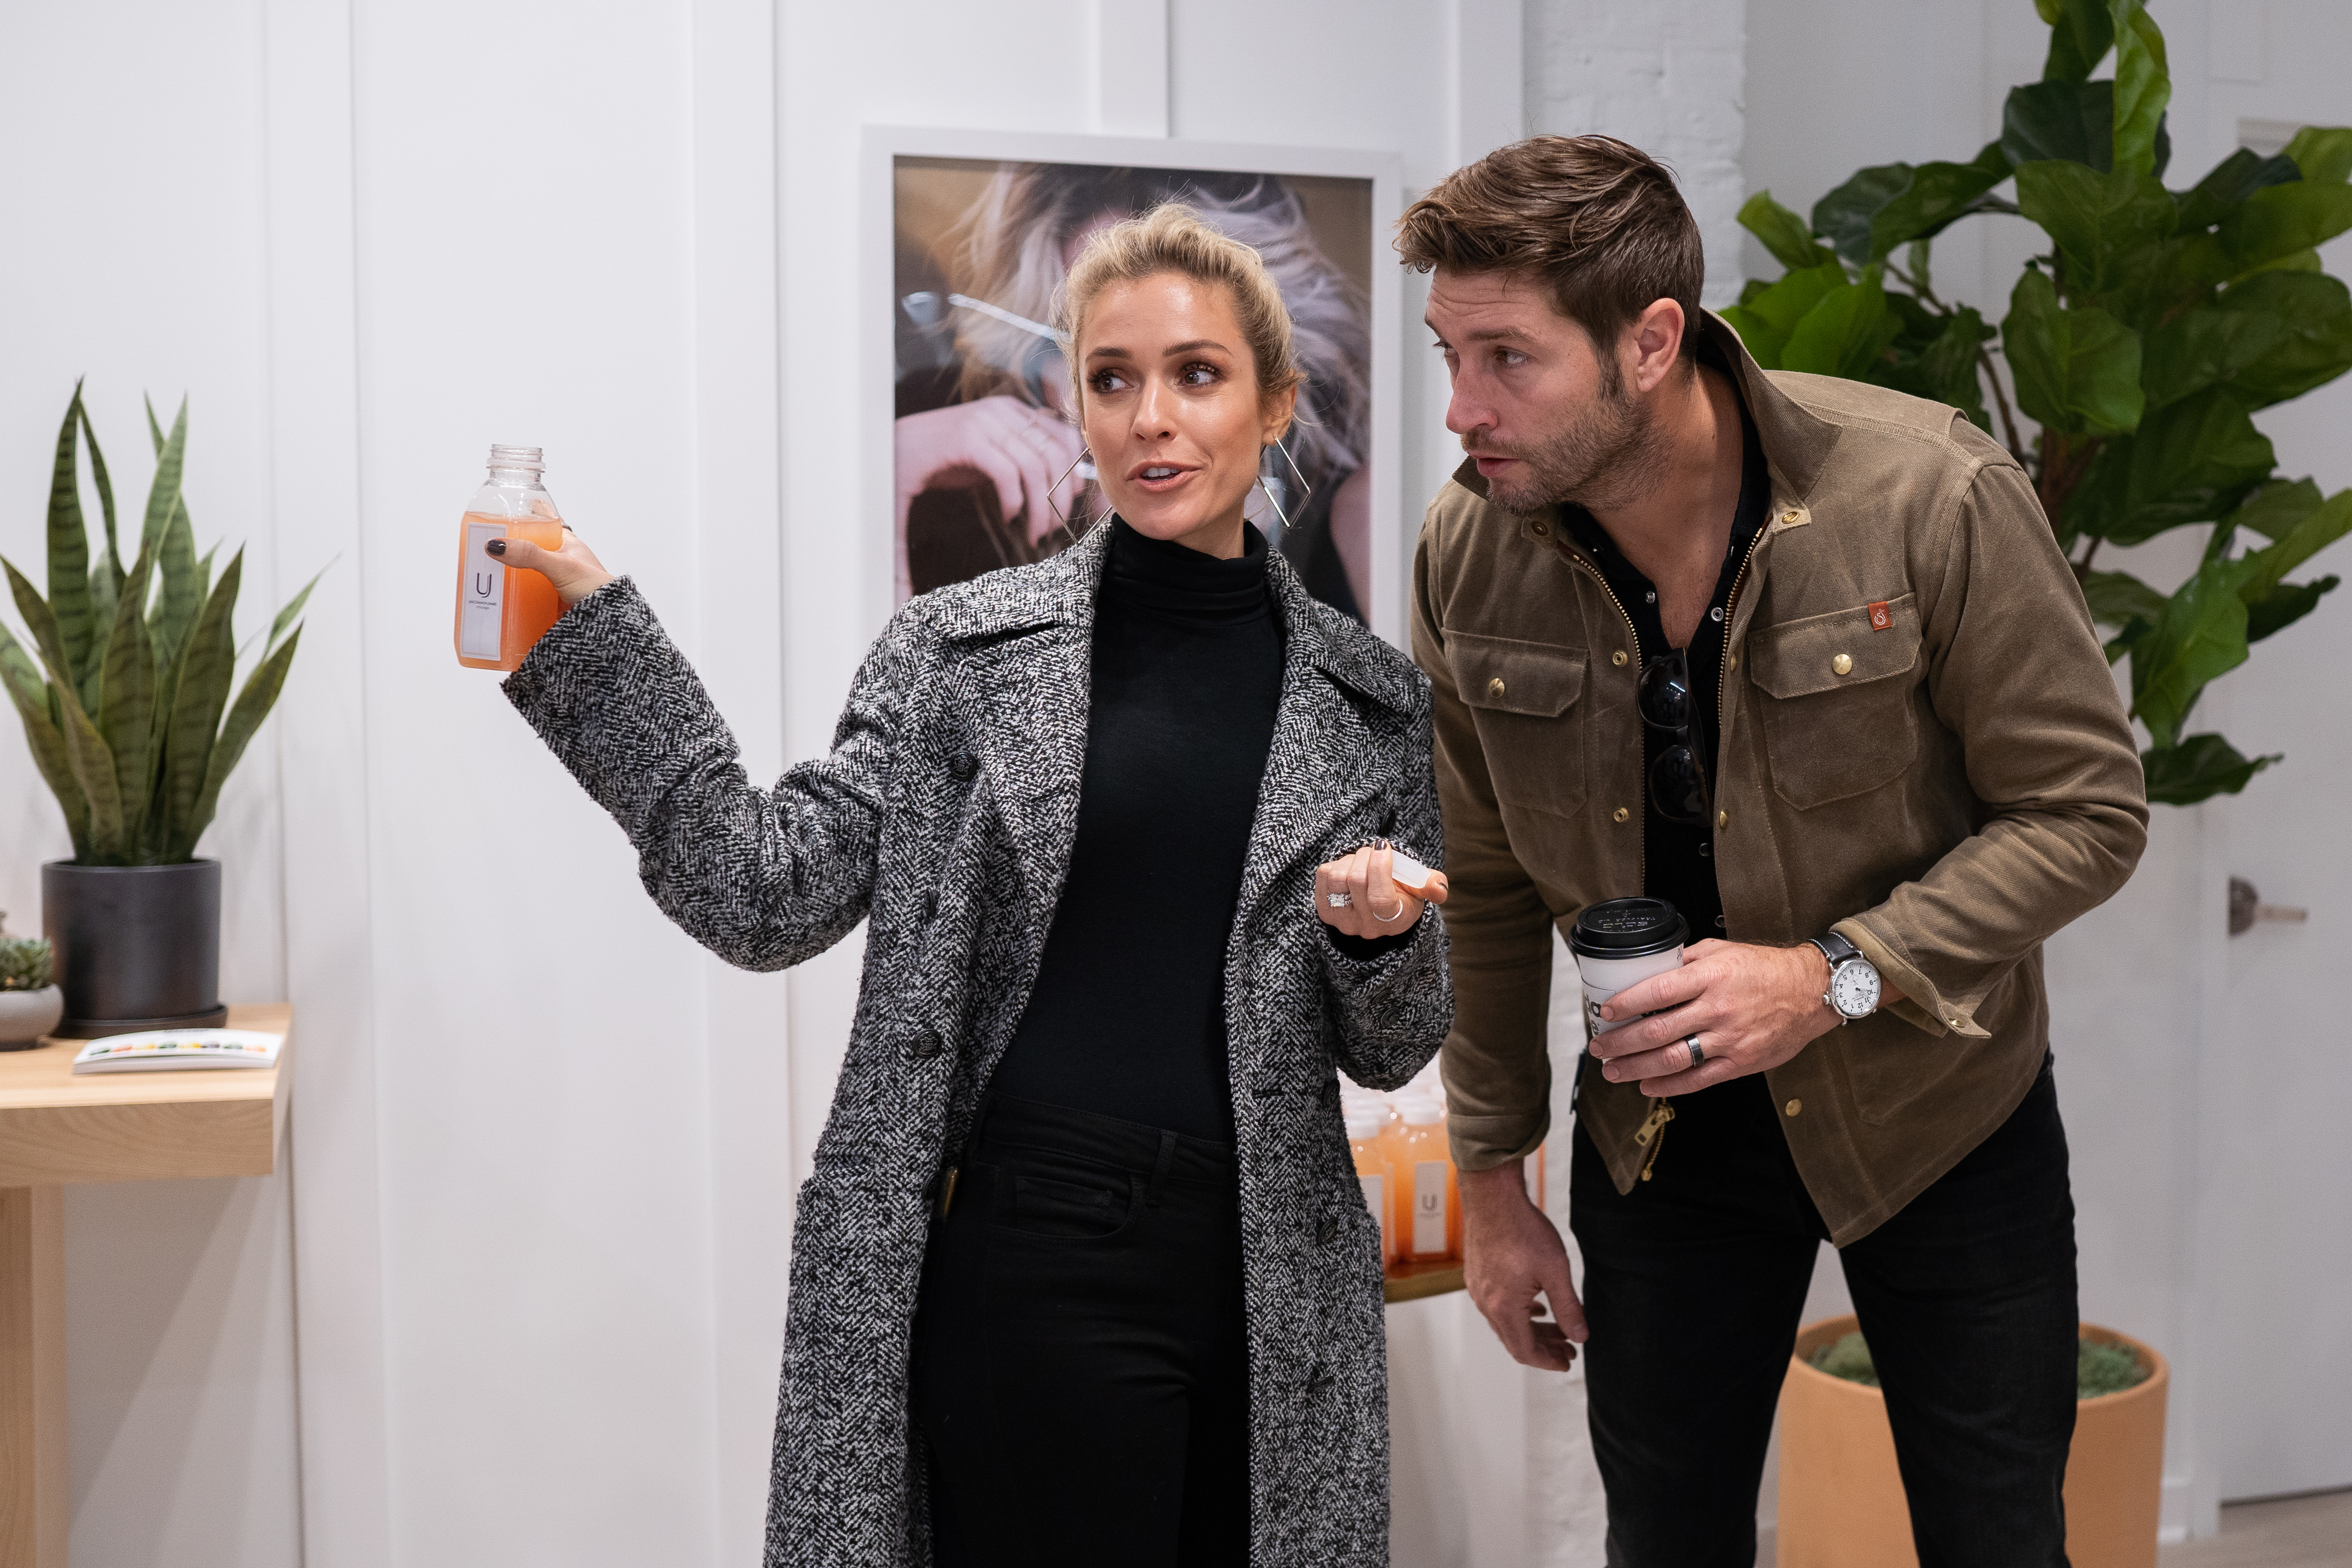 Kristin Cavallari, founder of Uncommon James, and her husband Jay Cutler, talk during the opening of her store's West Loop location in Chicago.